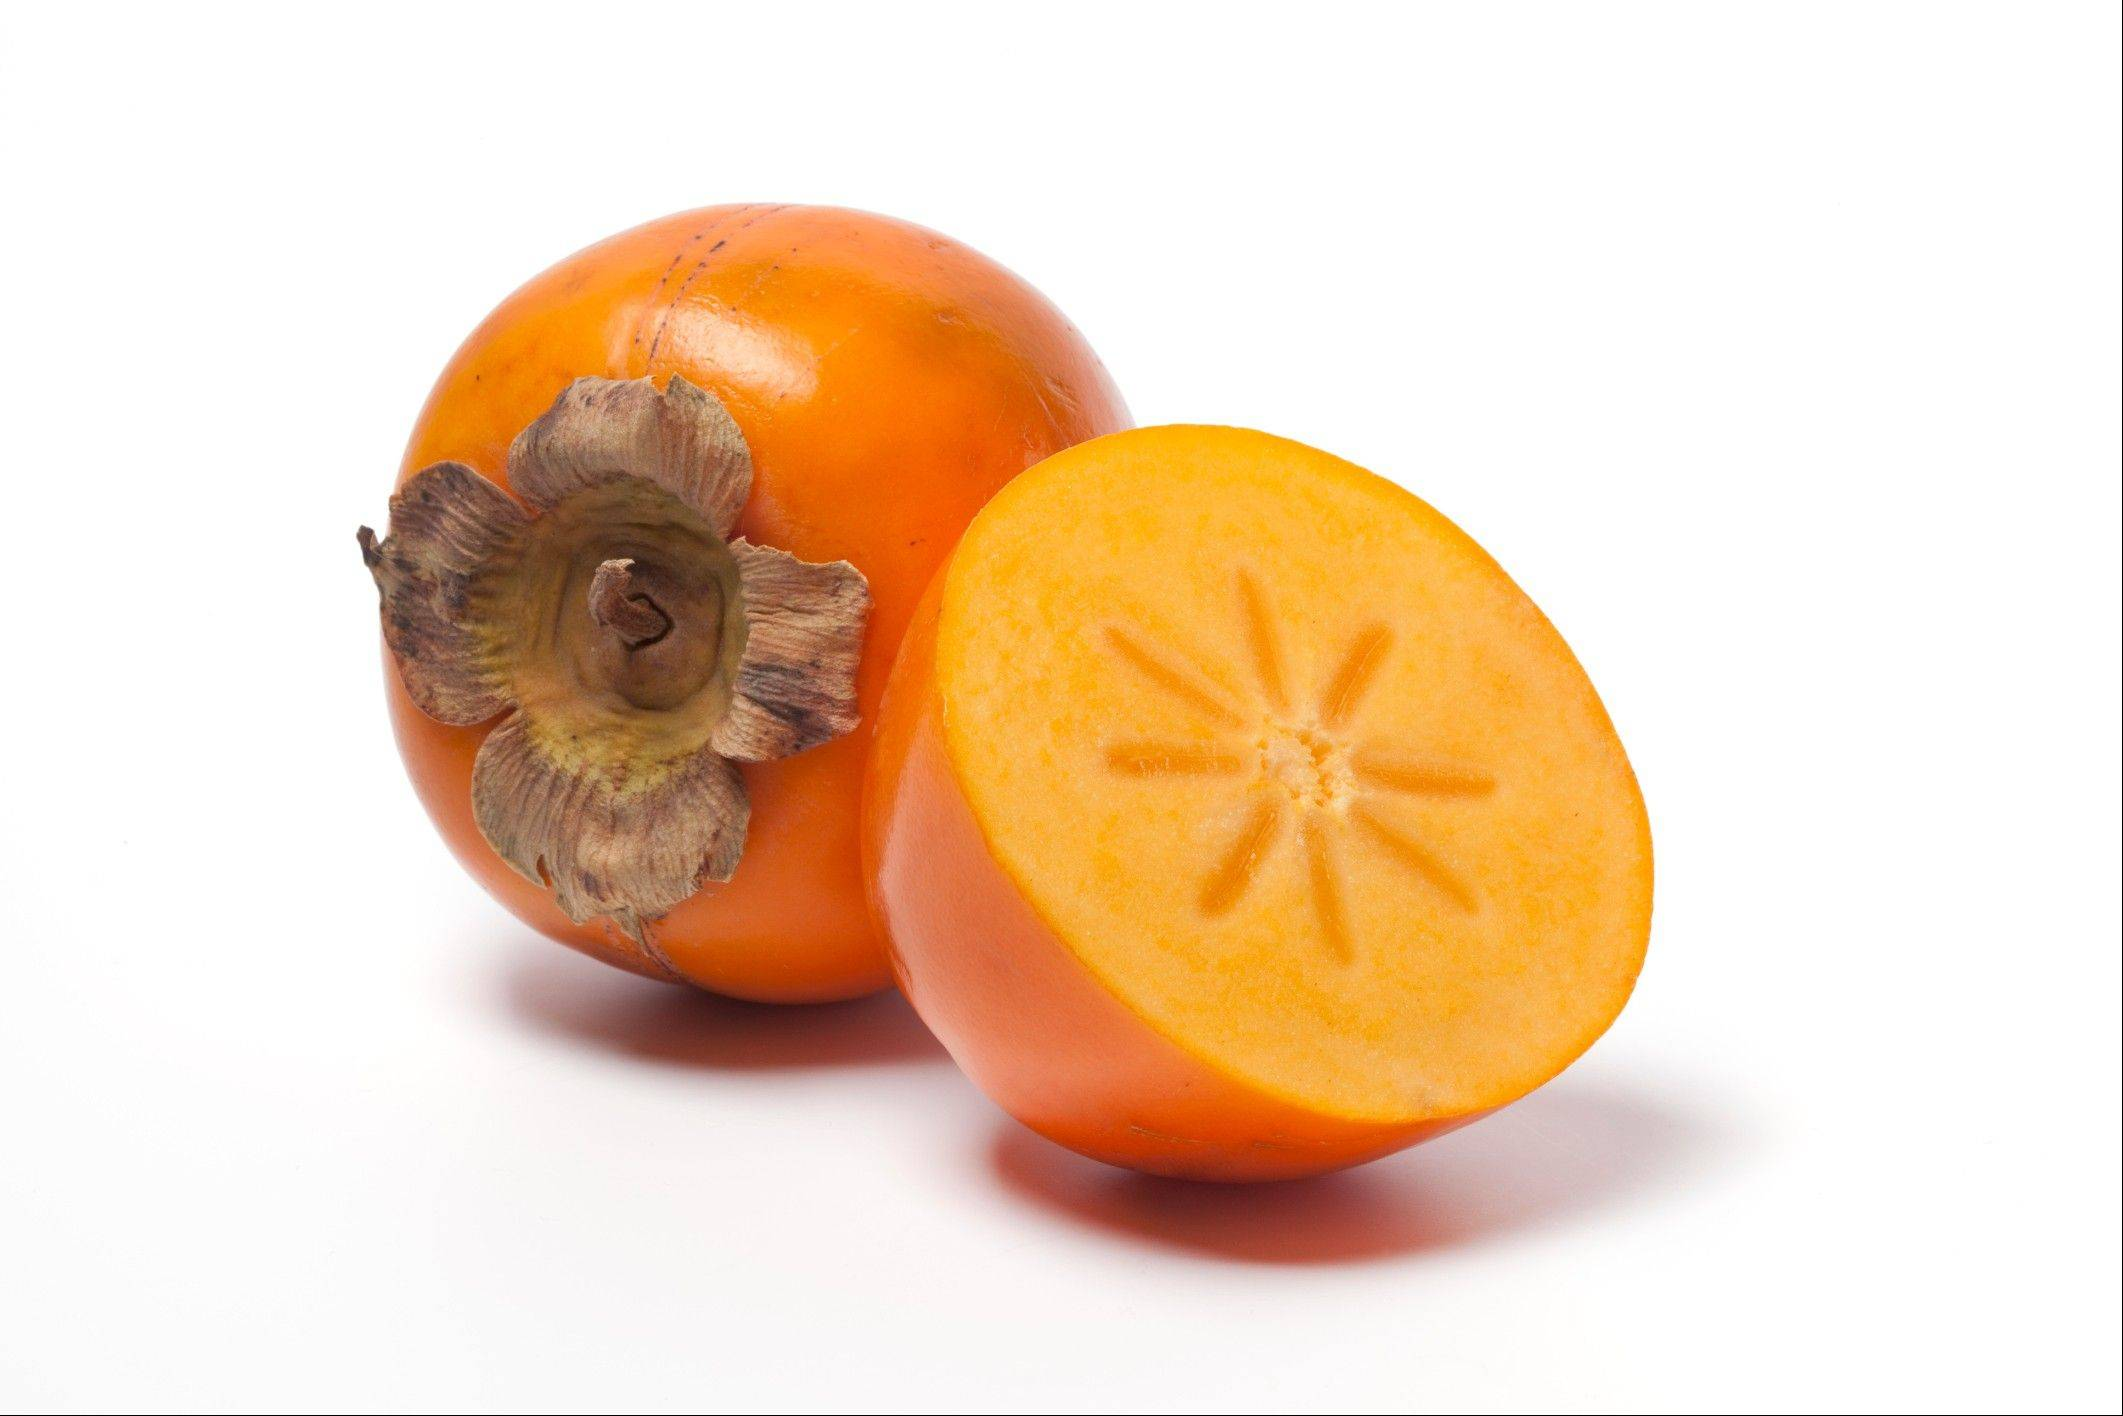 Lean and lovin' it: Get acquainted with persimmons